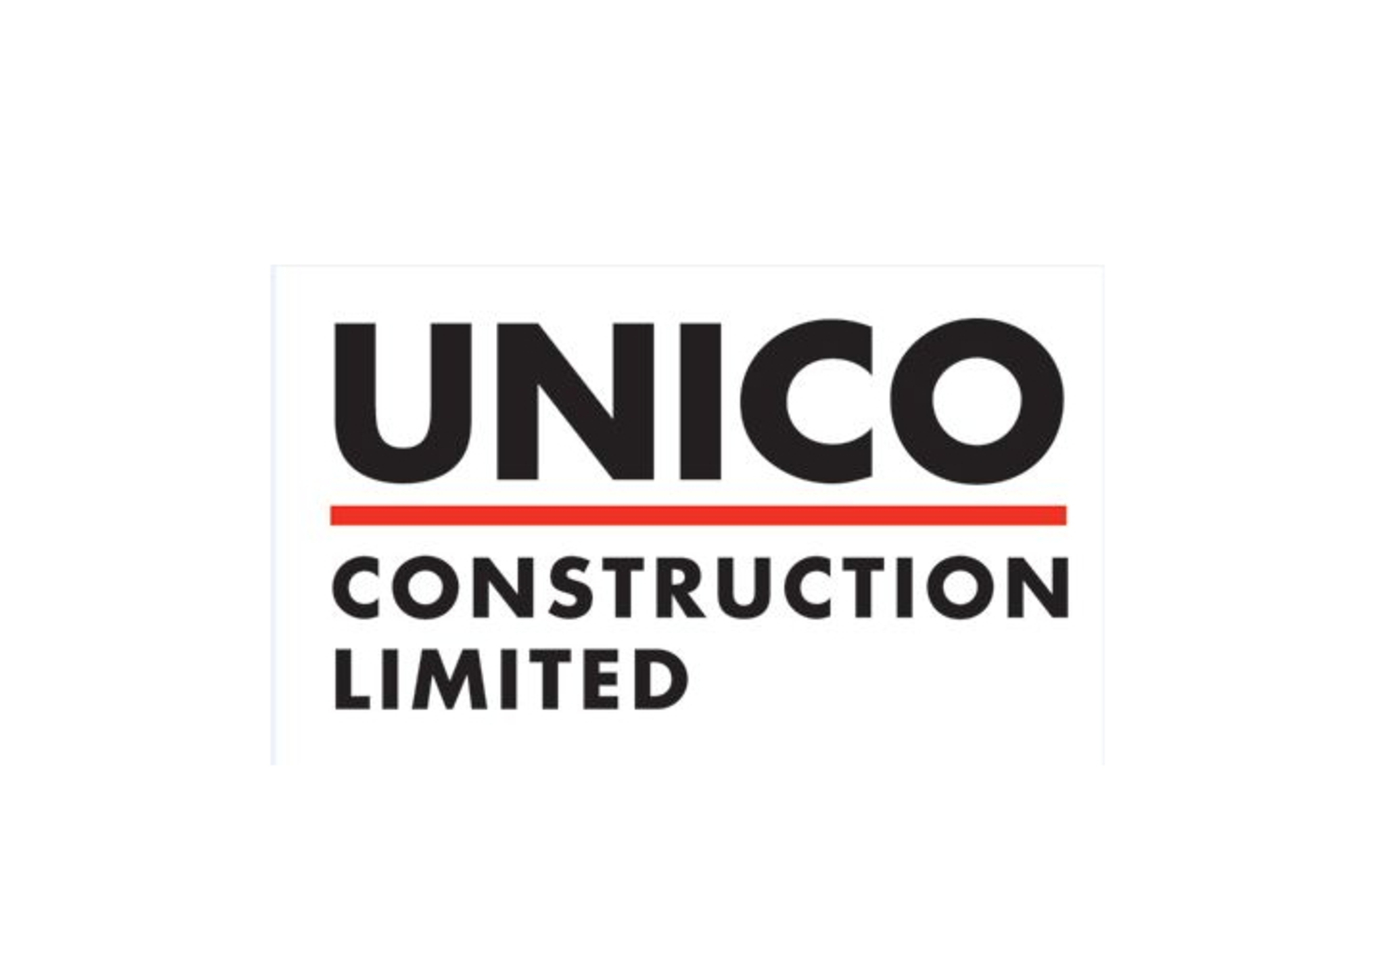 Unico Construction